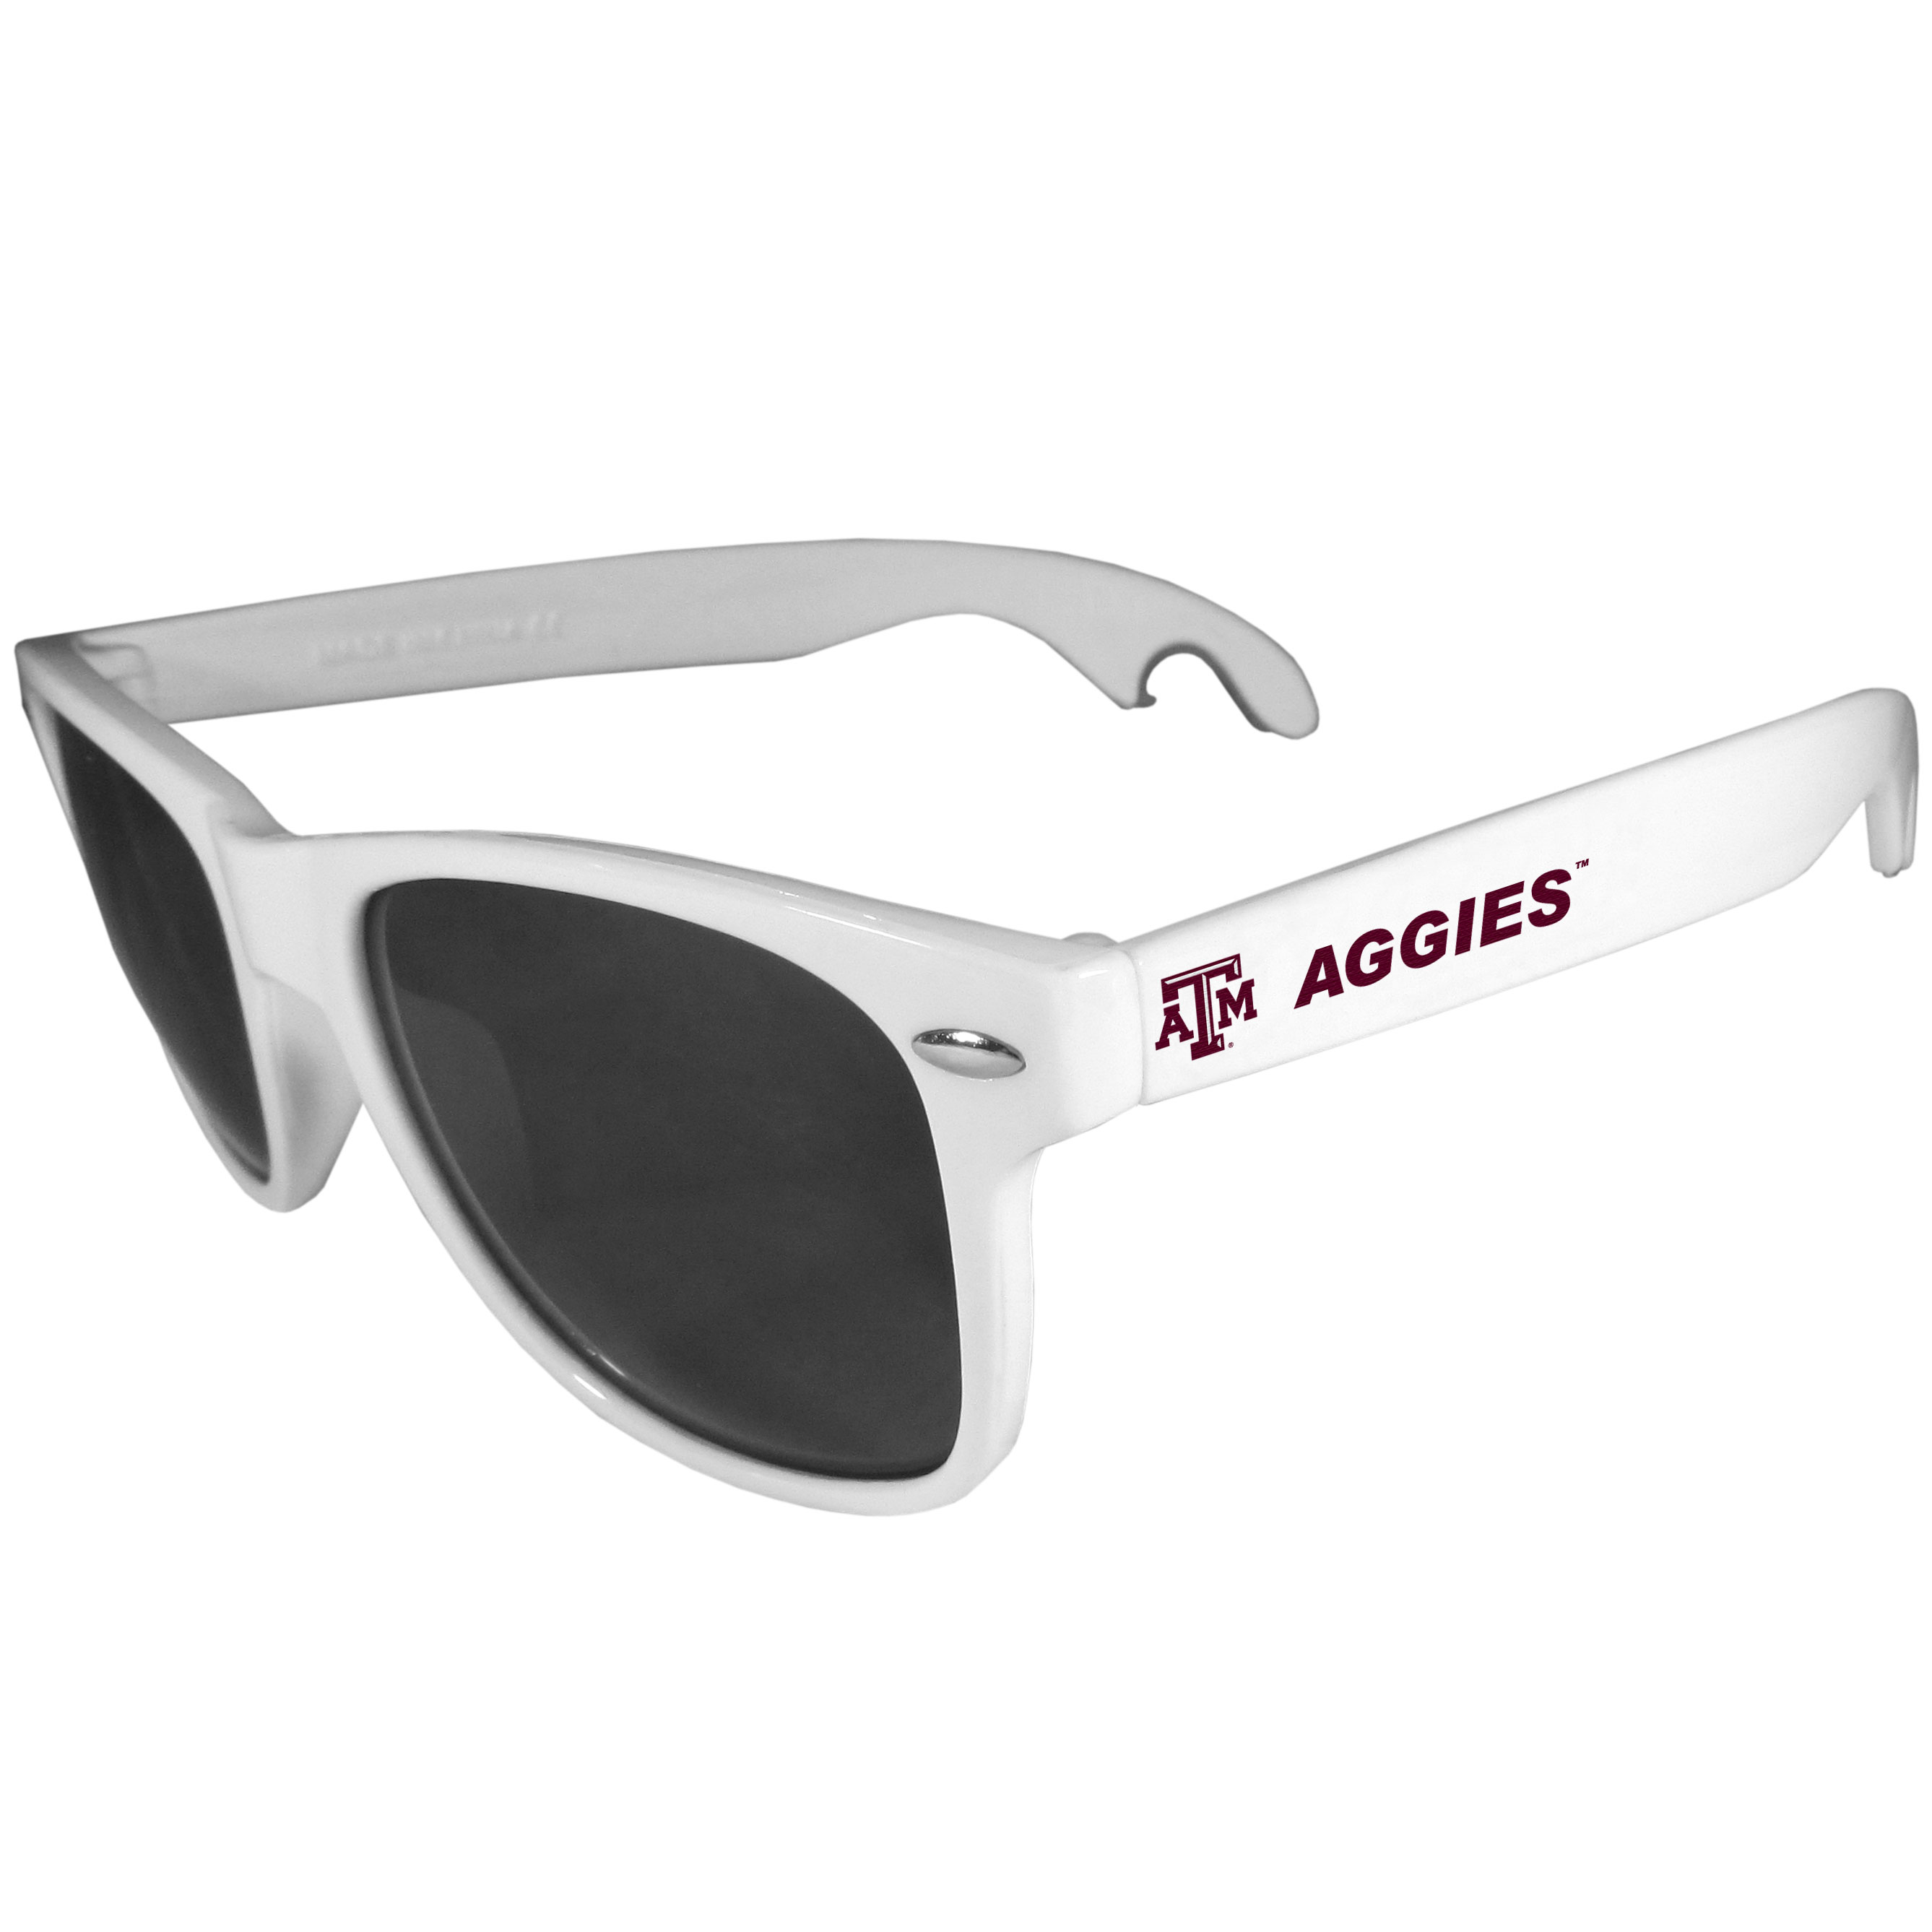 Texas A and M Aggies Beachfarer Bottle Opener Sunglasses, White - Seriously, these sunglasses open bottles! Keep the party going with these amazing Texas A & M Aggies bottle opener sunglasses. The stylish retro frames feature team designs on the arms and functional bottle openers on the end of the arms. Whether you are at the beach or having a backyard BBQ on game day, these shades will keep your eyes protected with 100% UVA/UVB protection and keep you hydrated with the handy bottle opener arms.